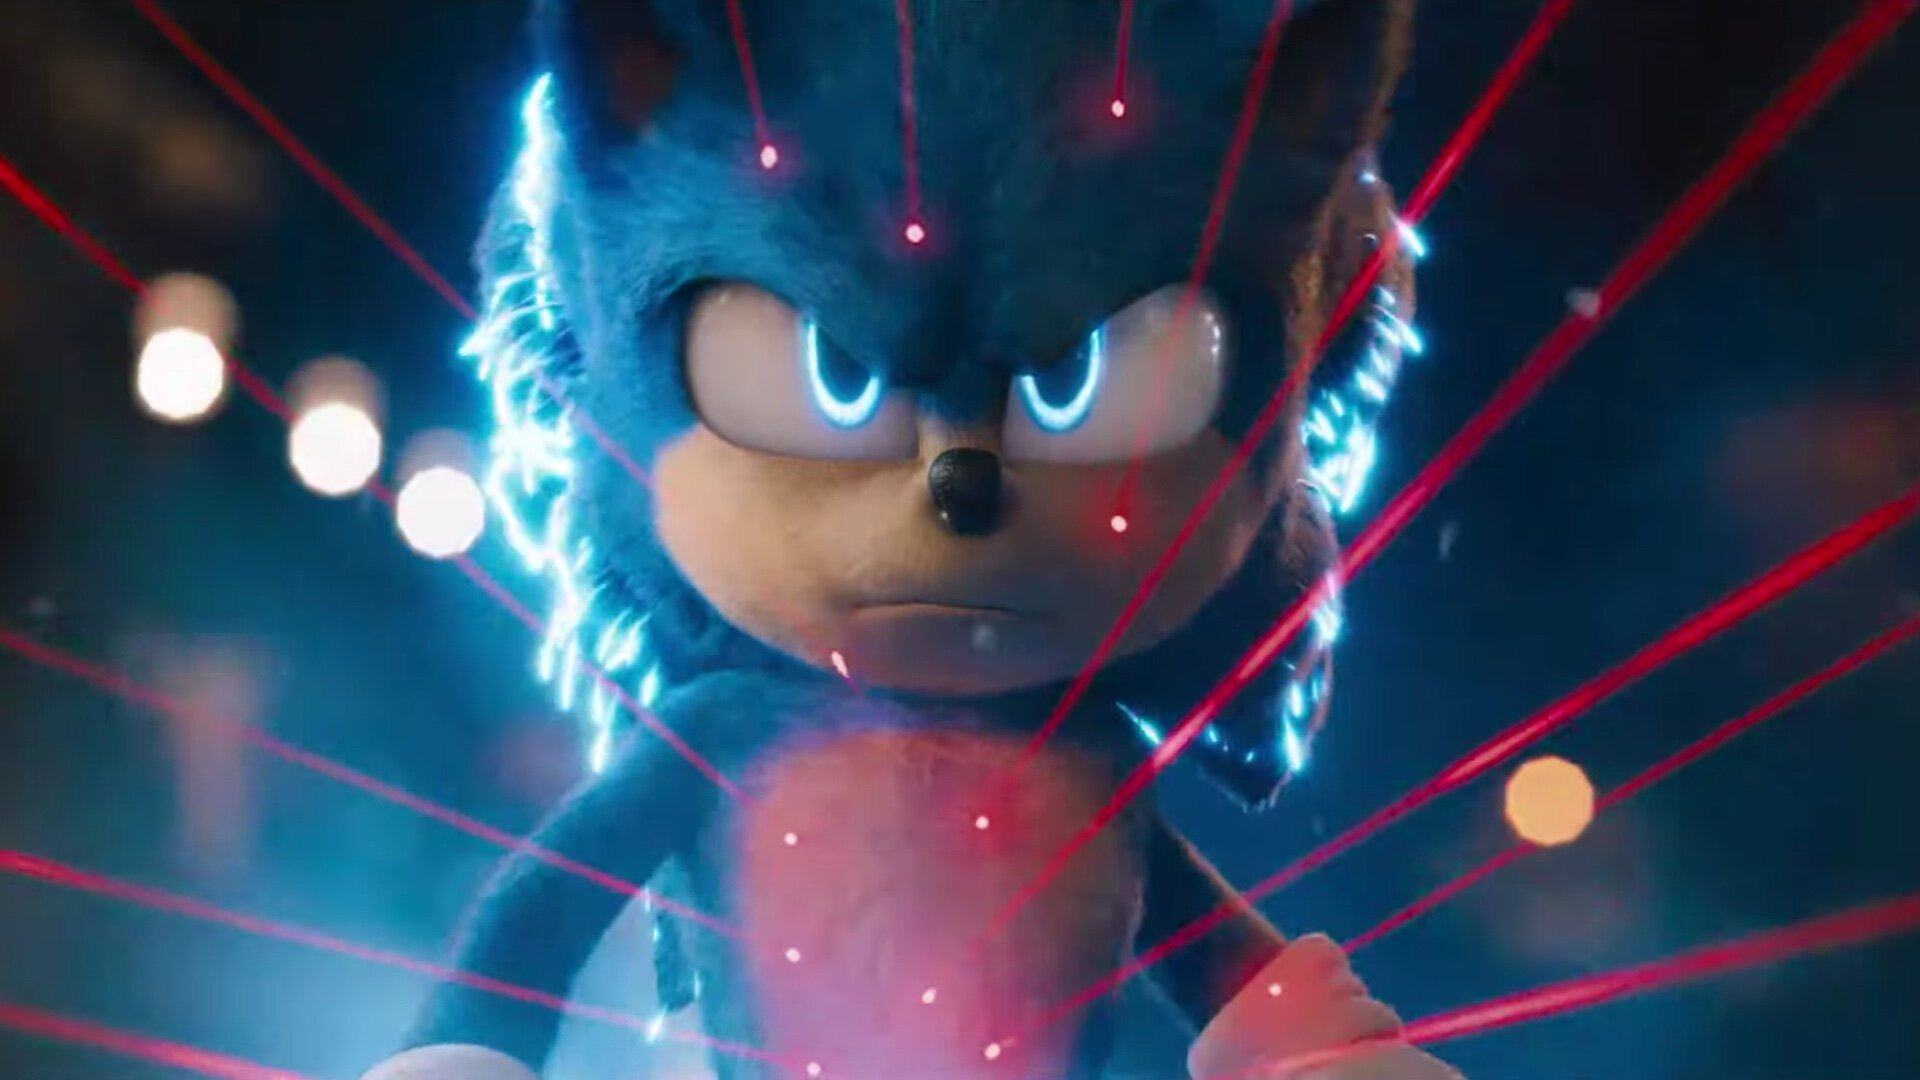 Sonic the Hedgehog Review: An All-Ages Adventure